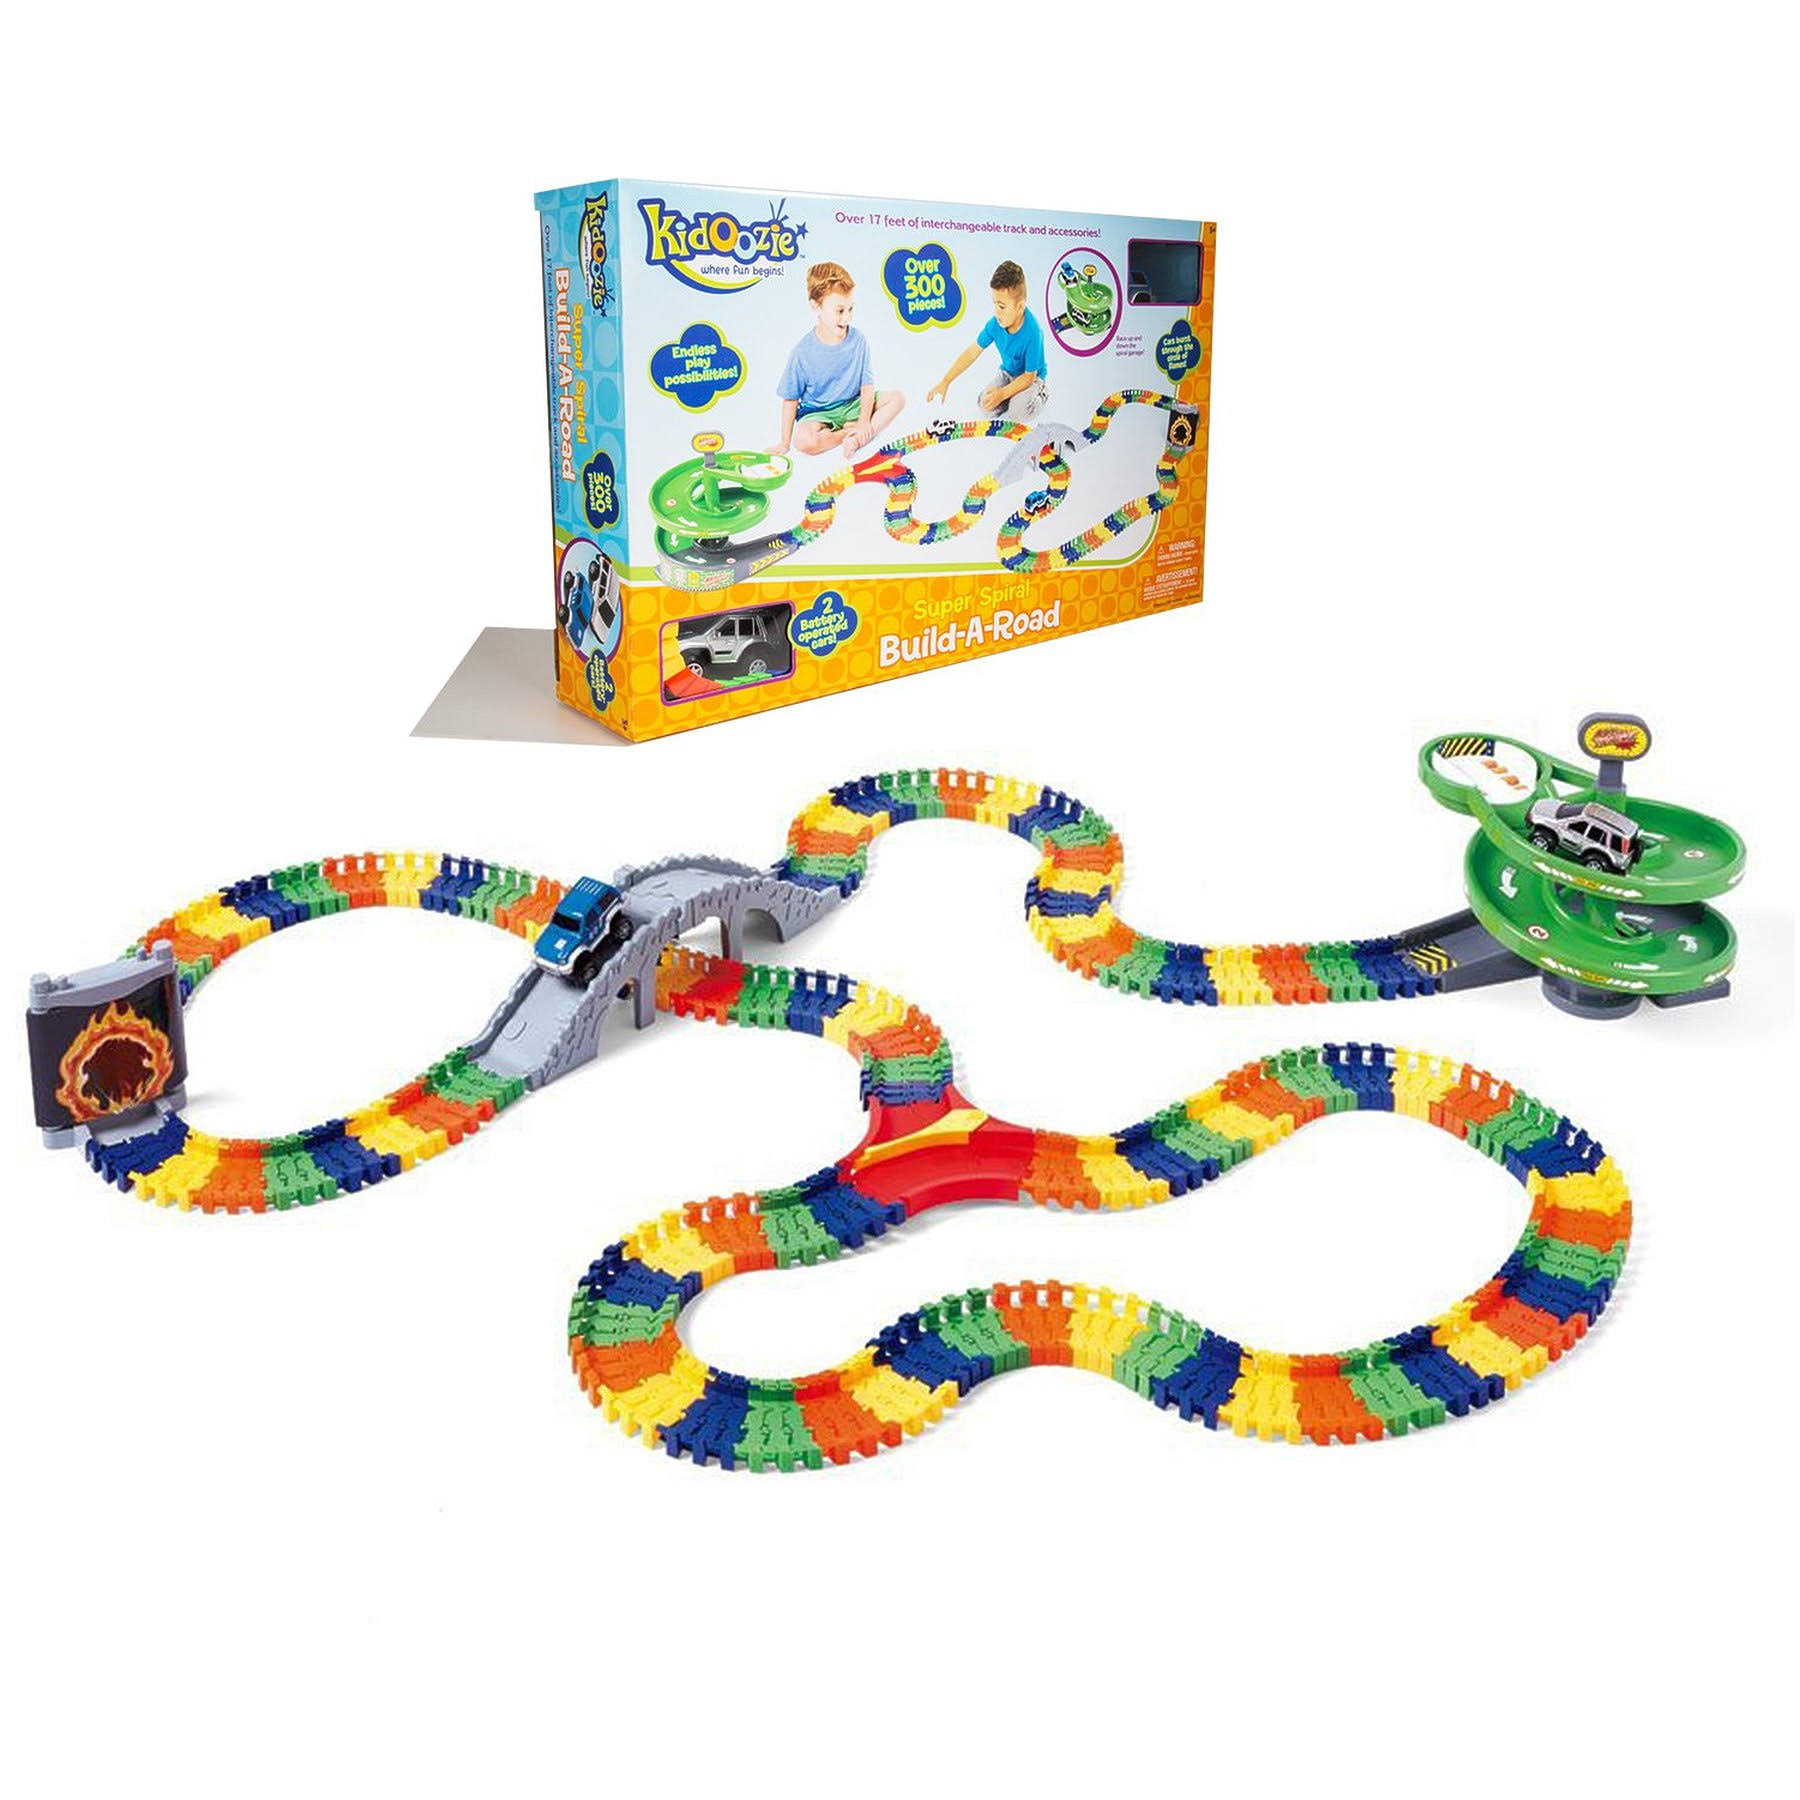 Kidoozie Super Spiral Build A Road Playset